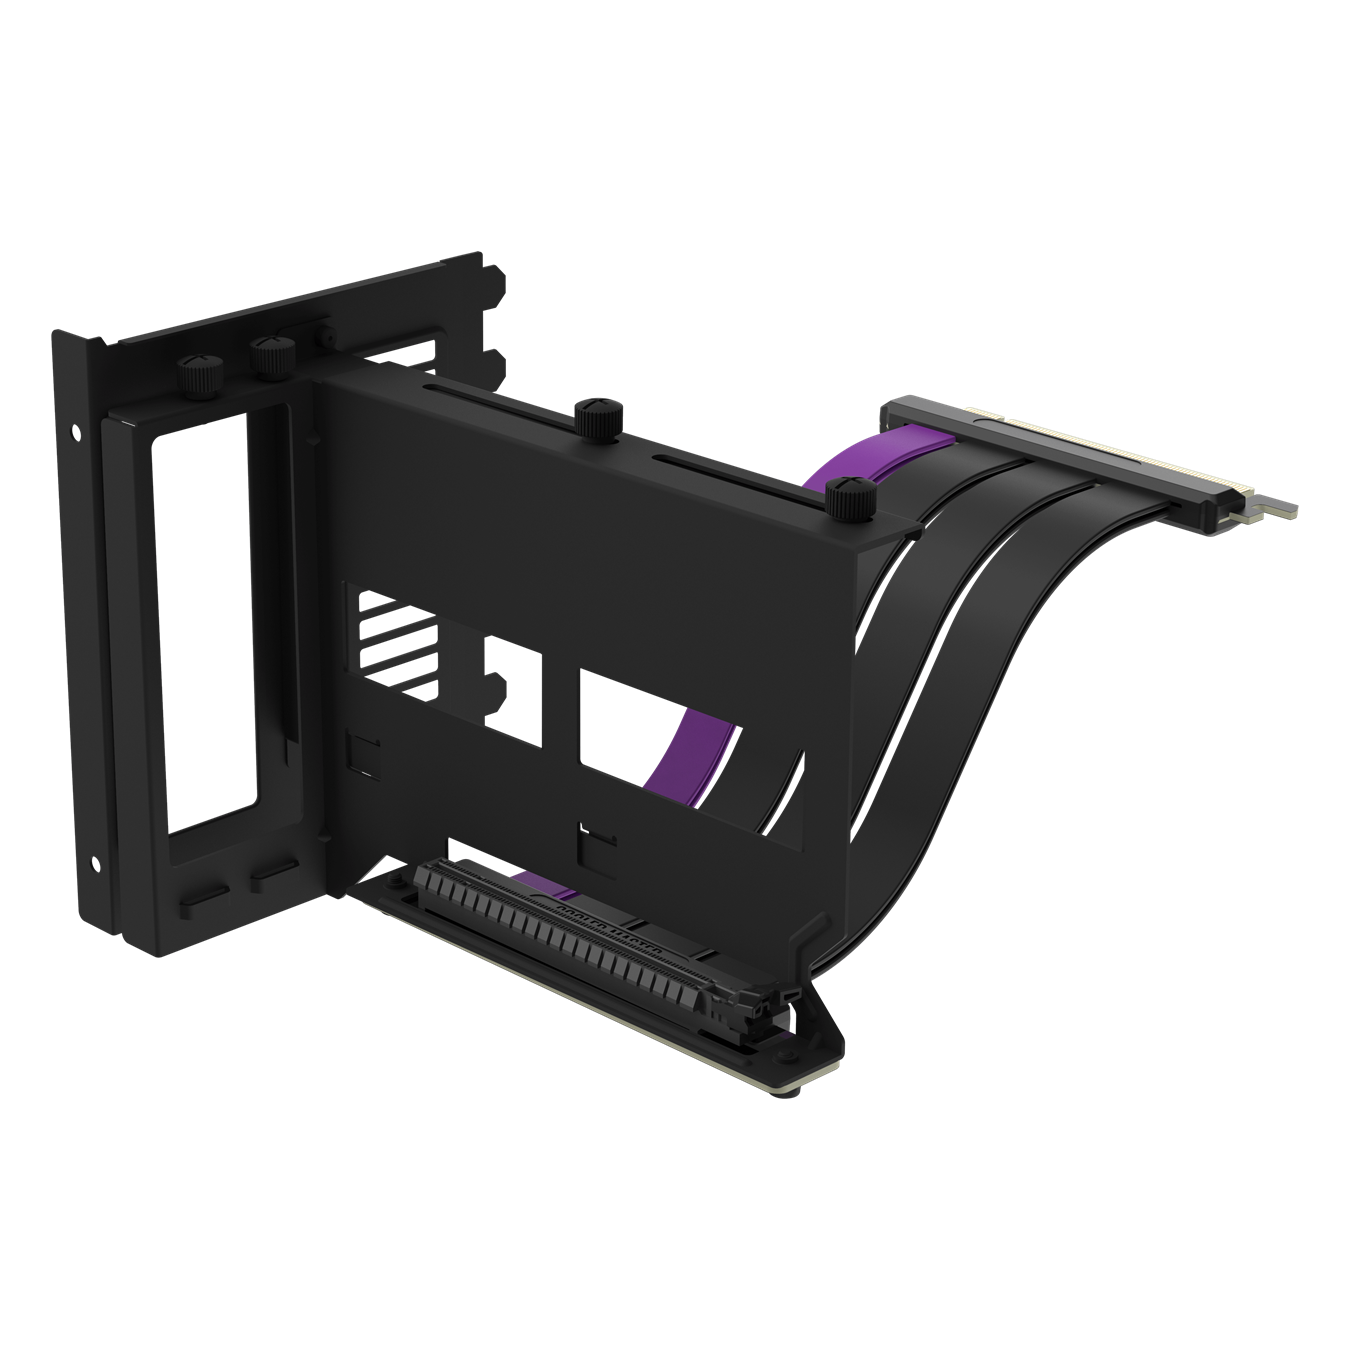 Black Universal Vertical GPU Bracket with an included matte black PCIe 4.0 riser cable with purple accent.